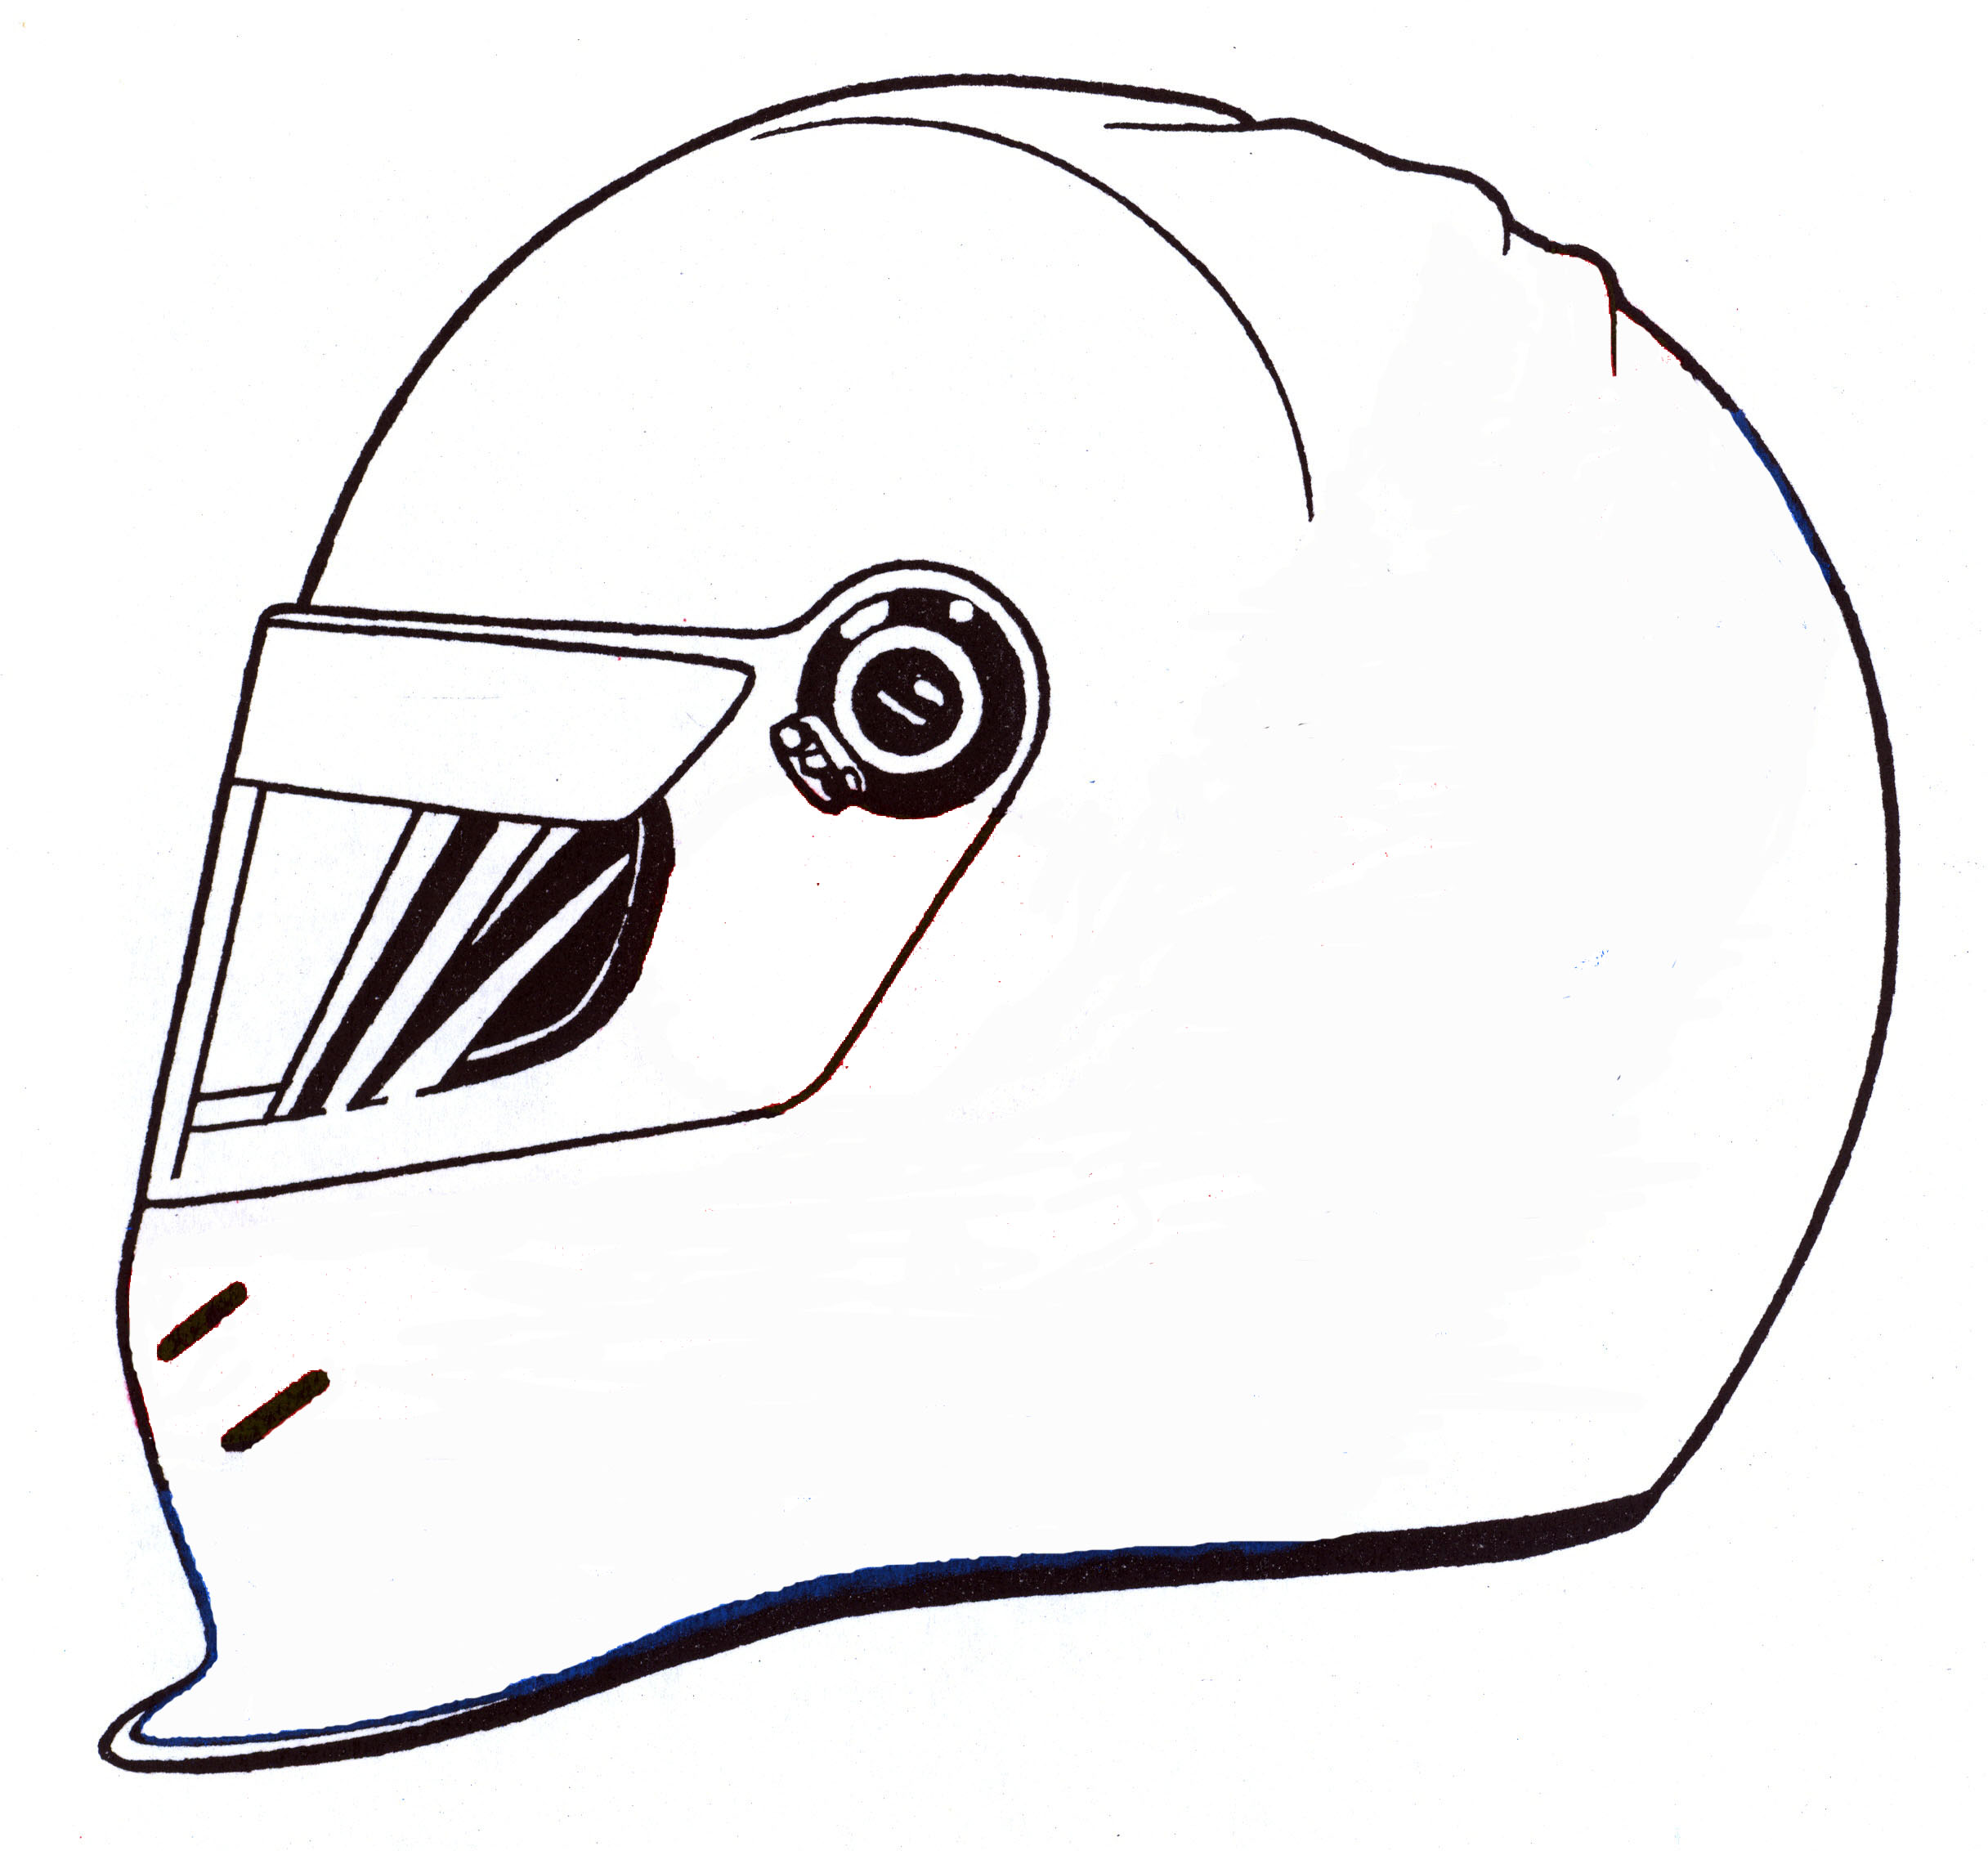 20 bike helmet safety coloring pages fire trucks and